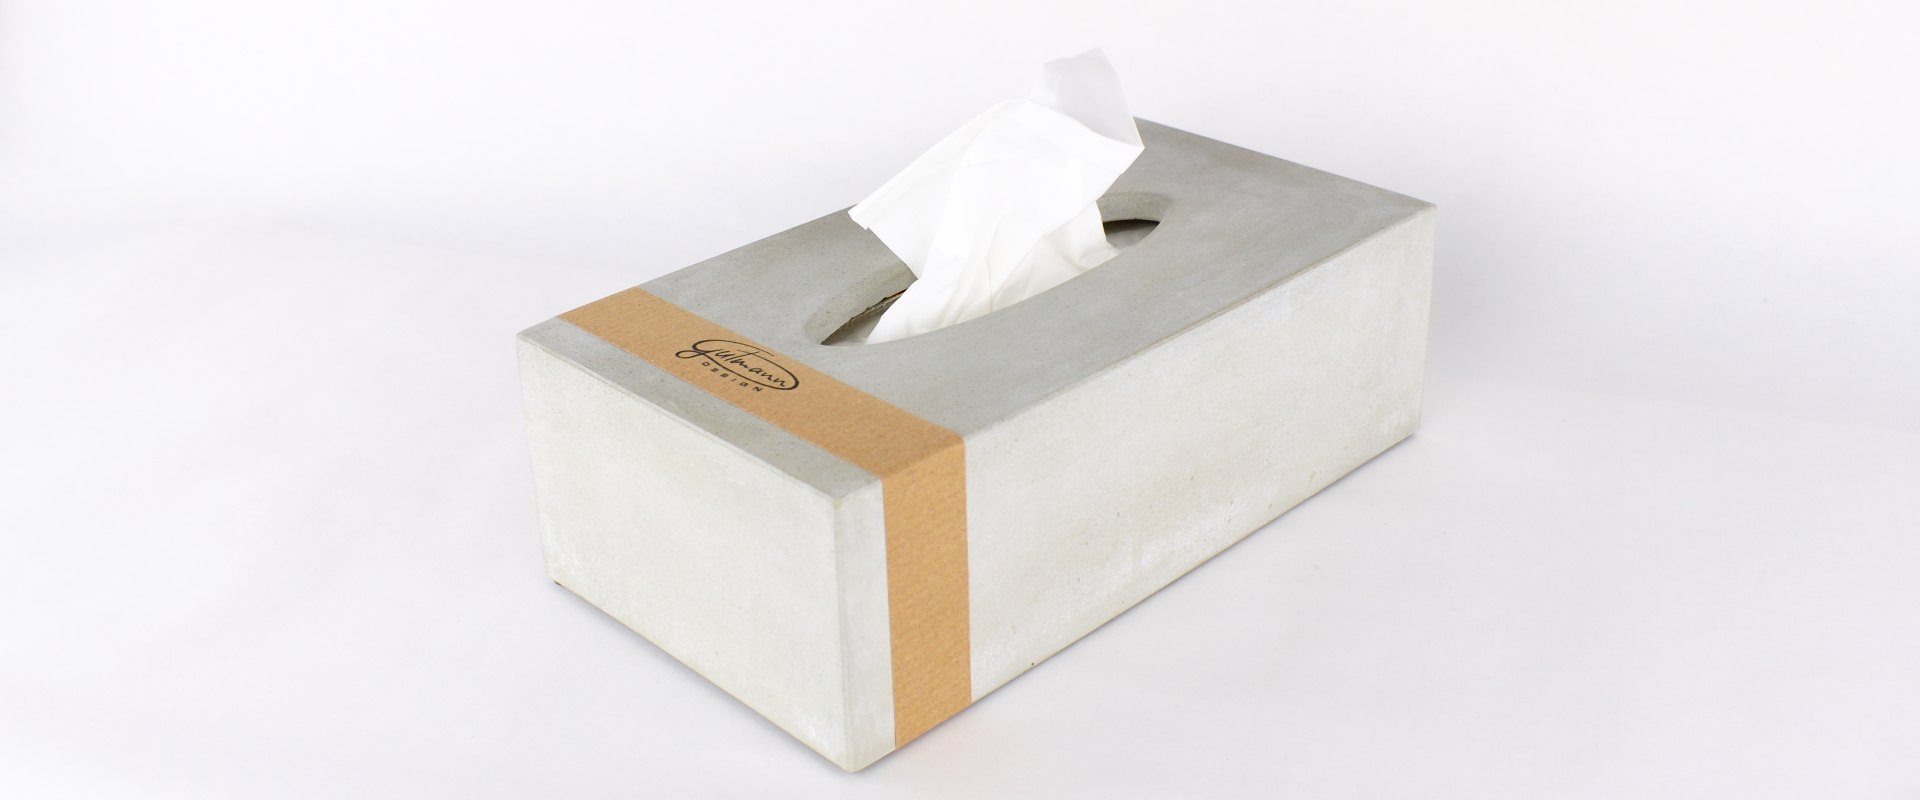 Tissue Box Beton Gutmann - Design